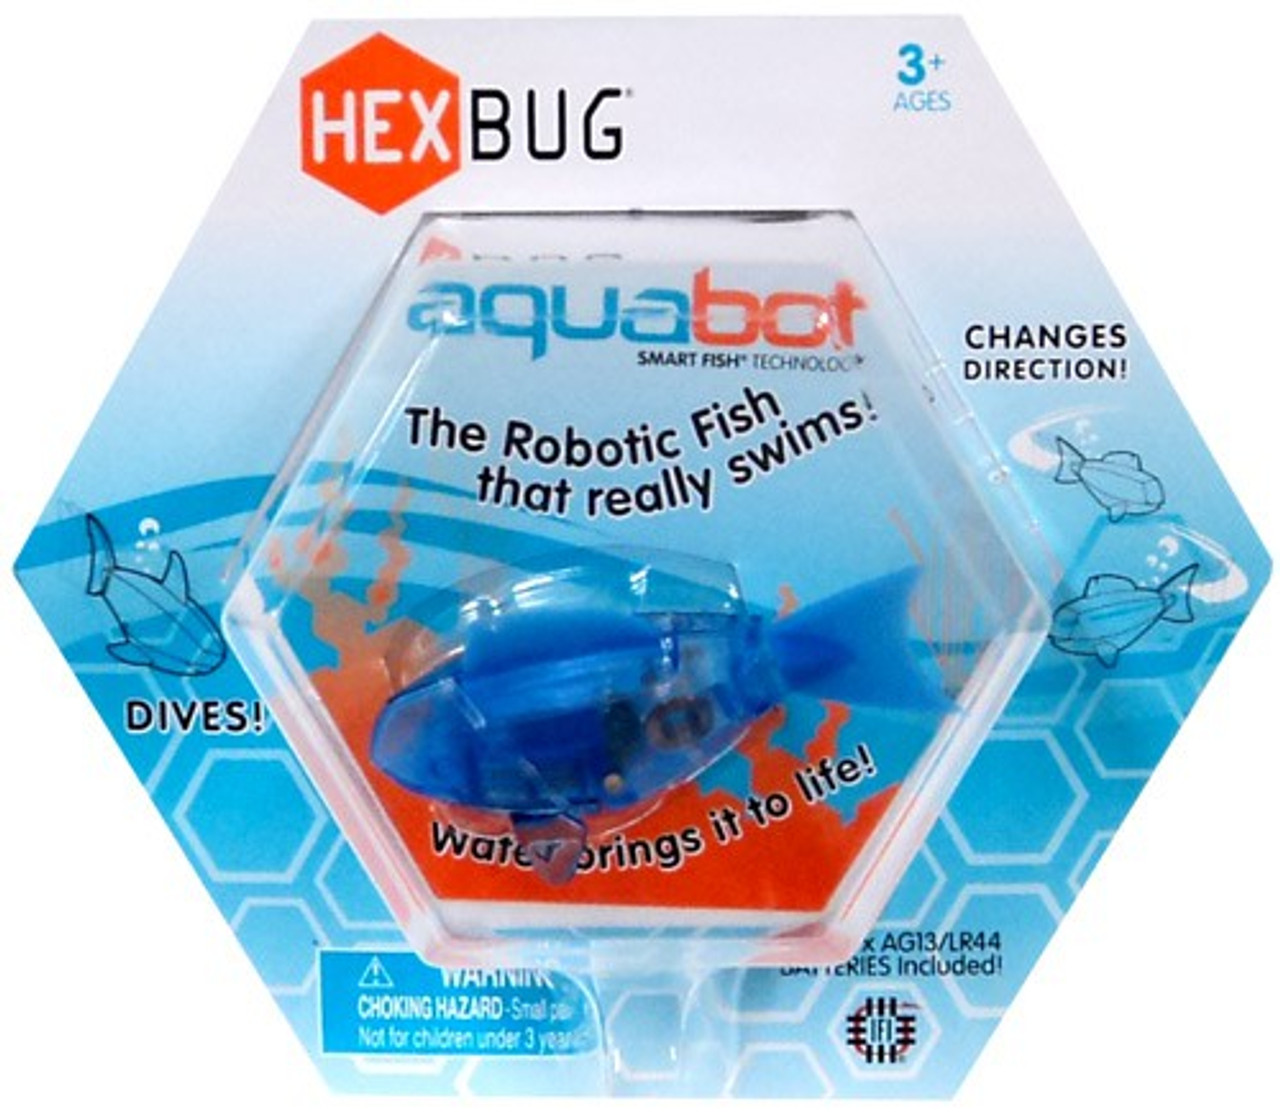 Hexbug Aquabot Blue Fish 3-Inch Electronic Pet